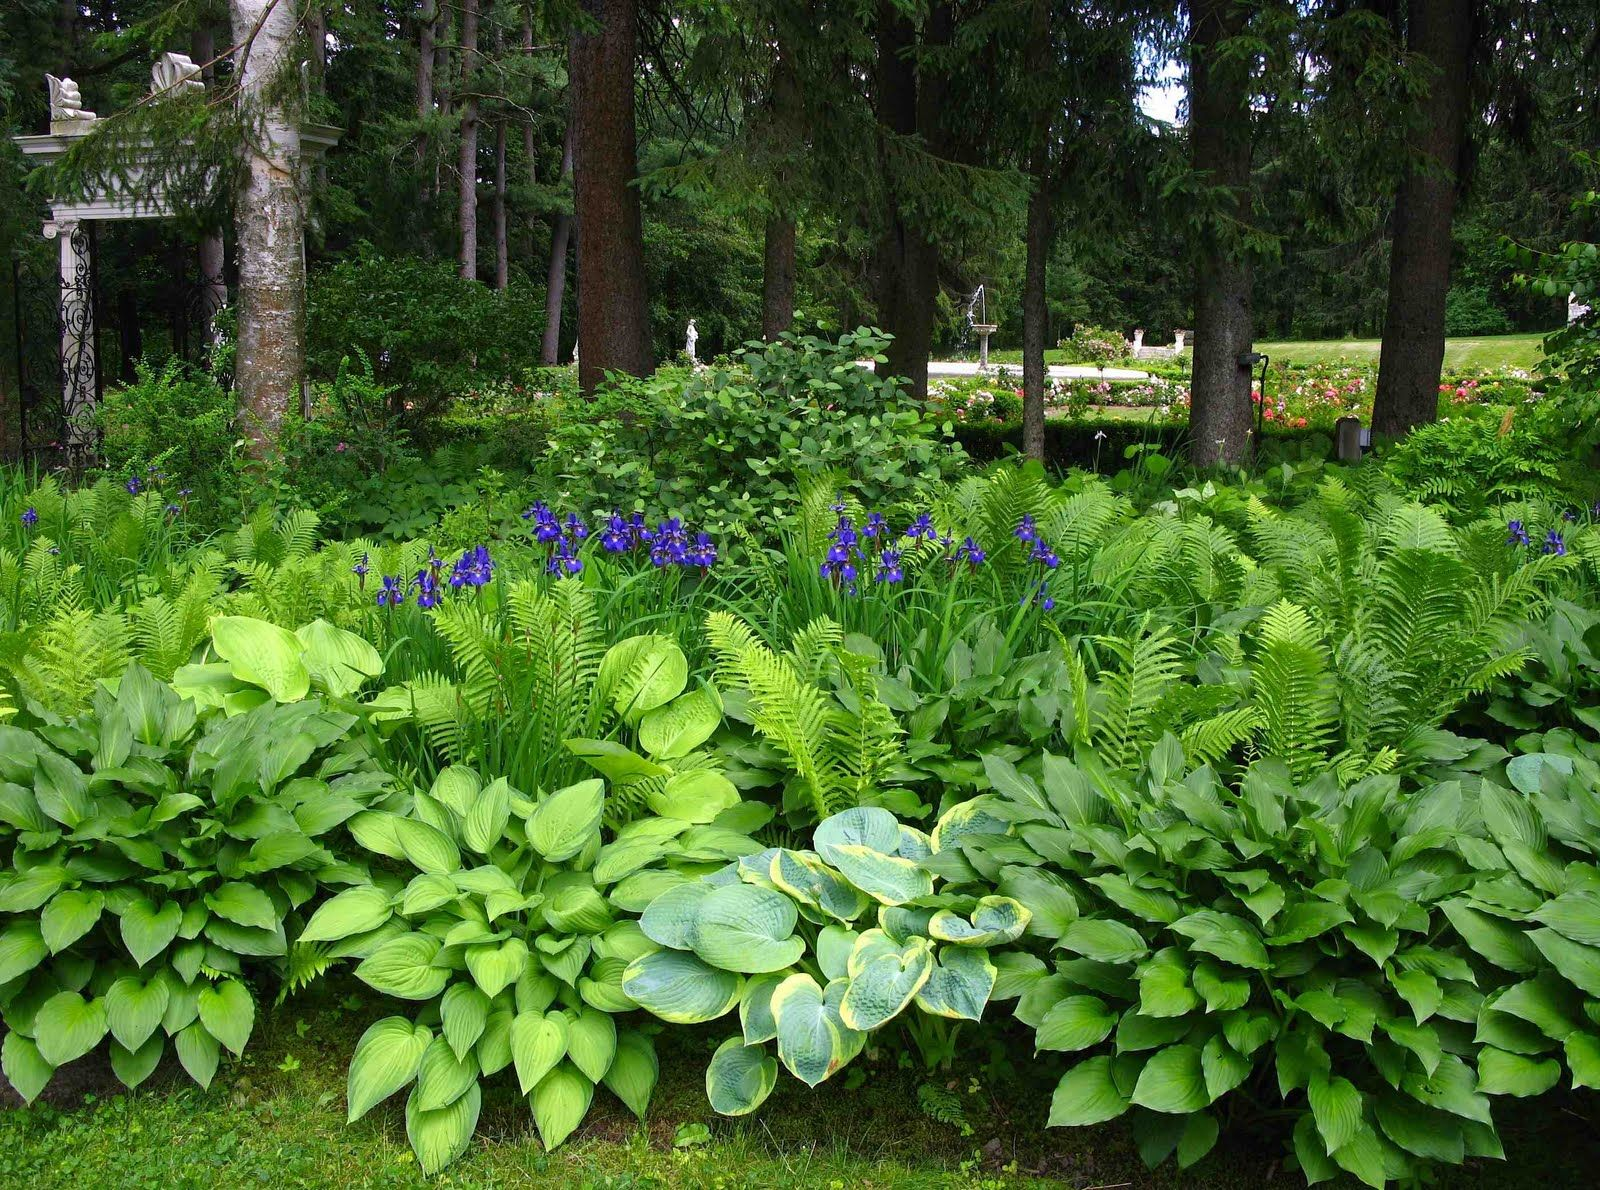 Shade Loving Bushes And Shrubs Irises Accented The